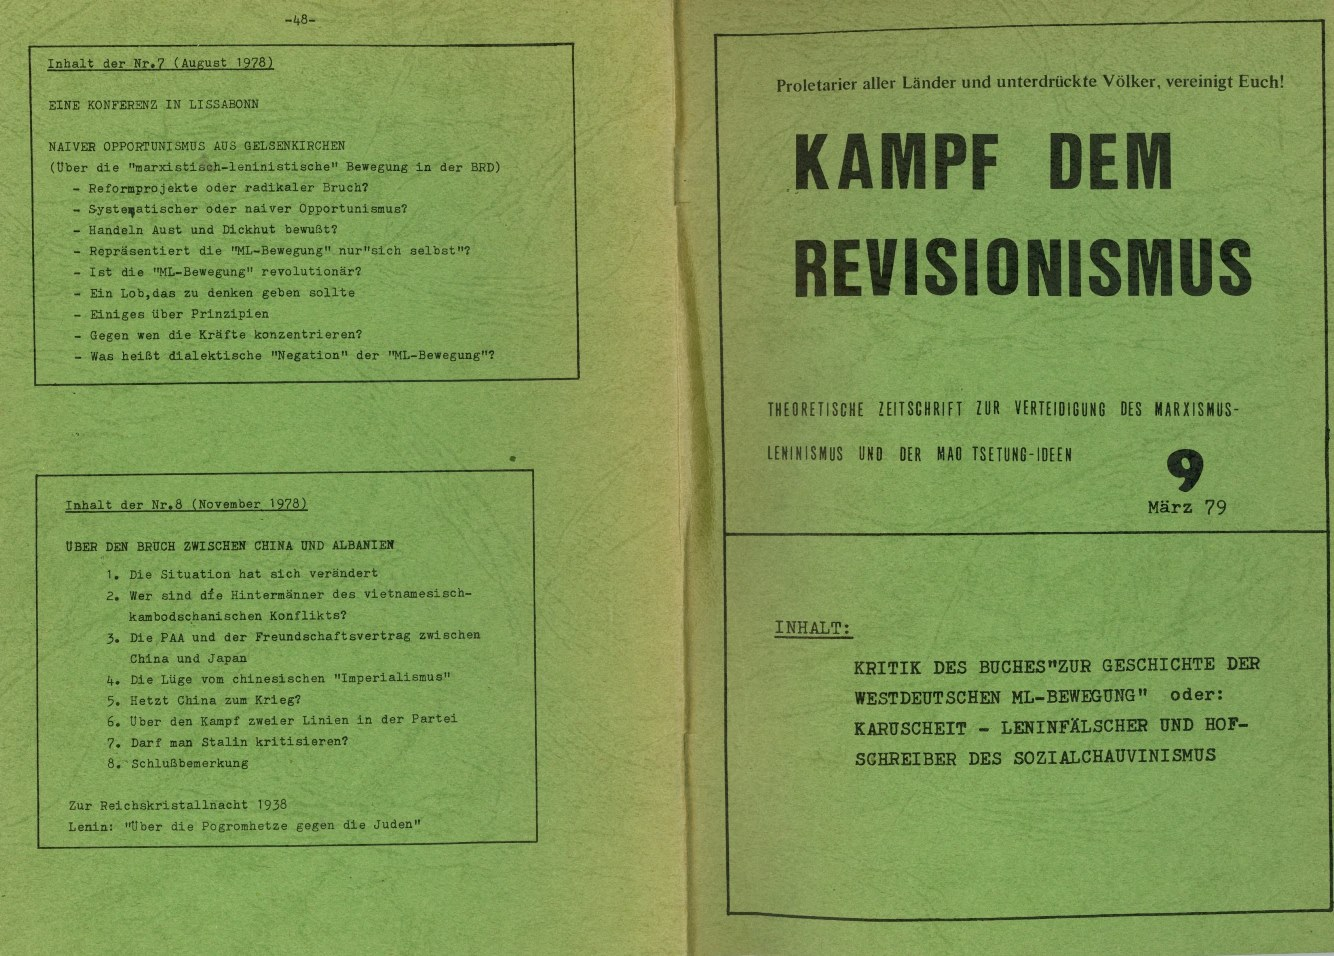 Muenchen_Kampf_dem_Revisionismus_1979_09_01